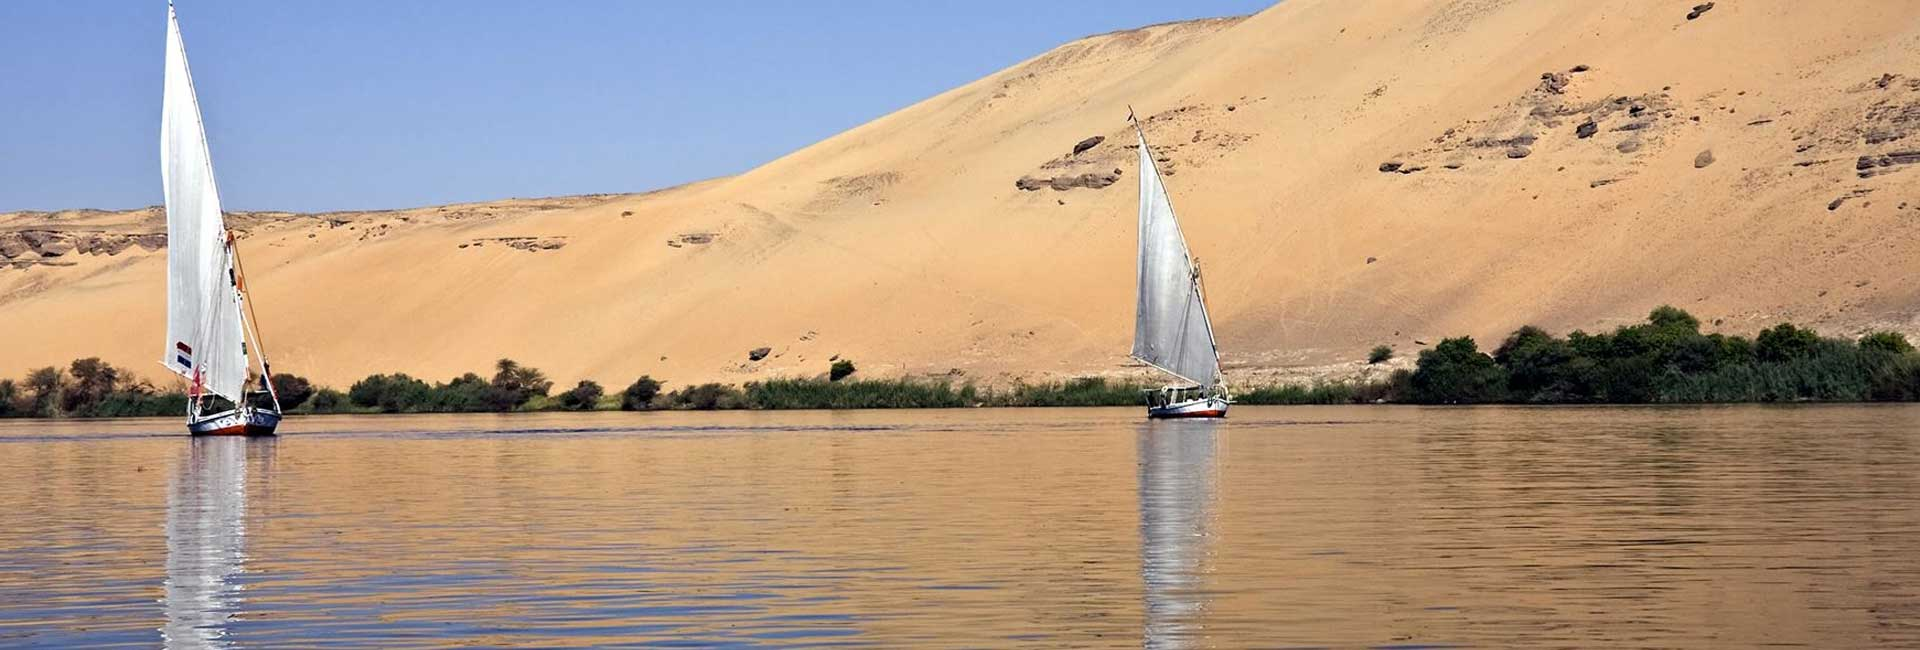 Best Time To Visit Nile